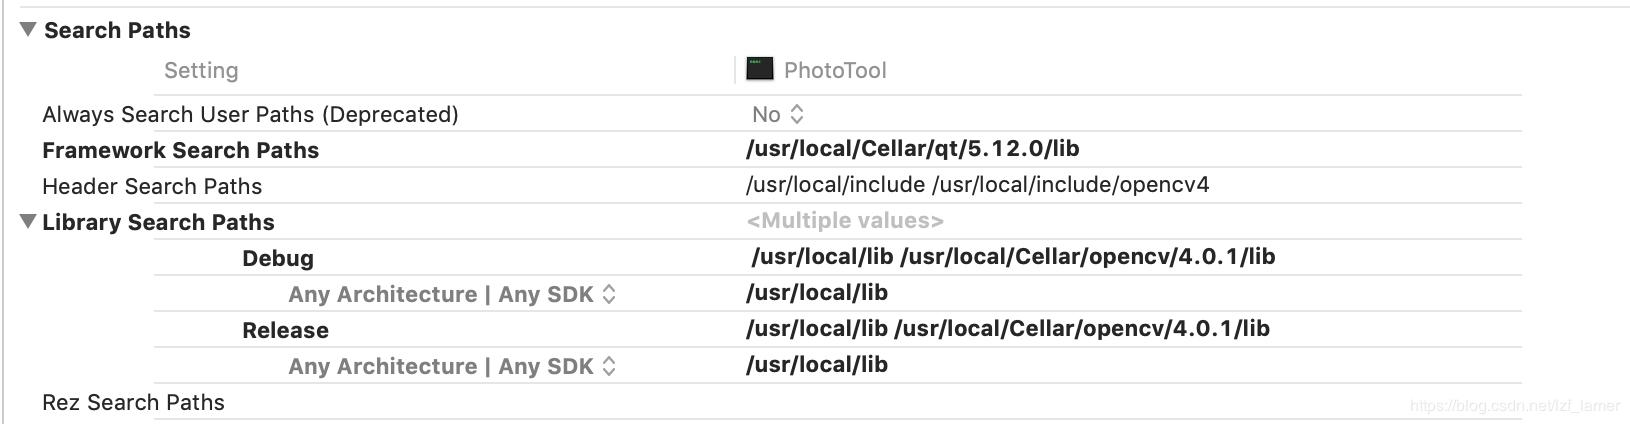 Configure OpenCV for XCode under MacOS and enable the QT